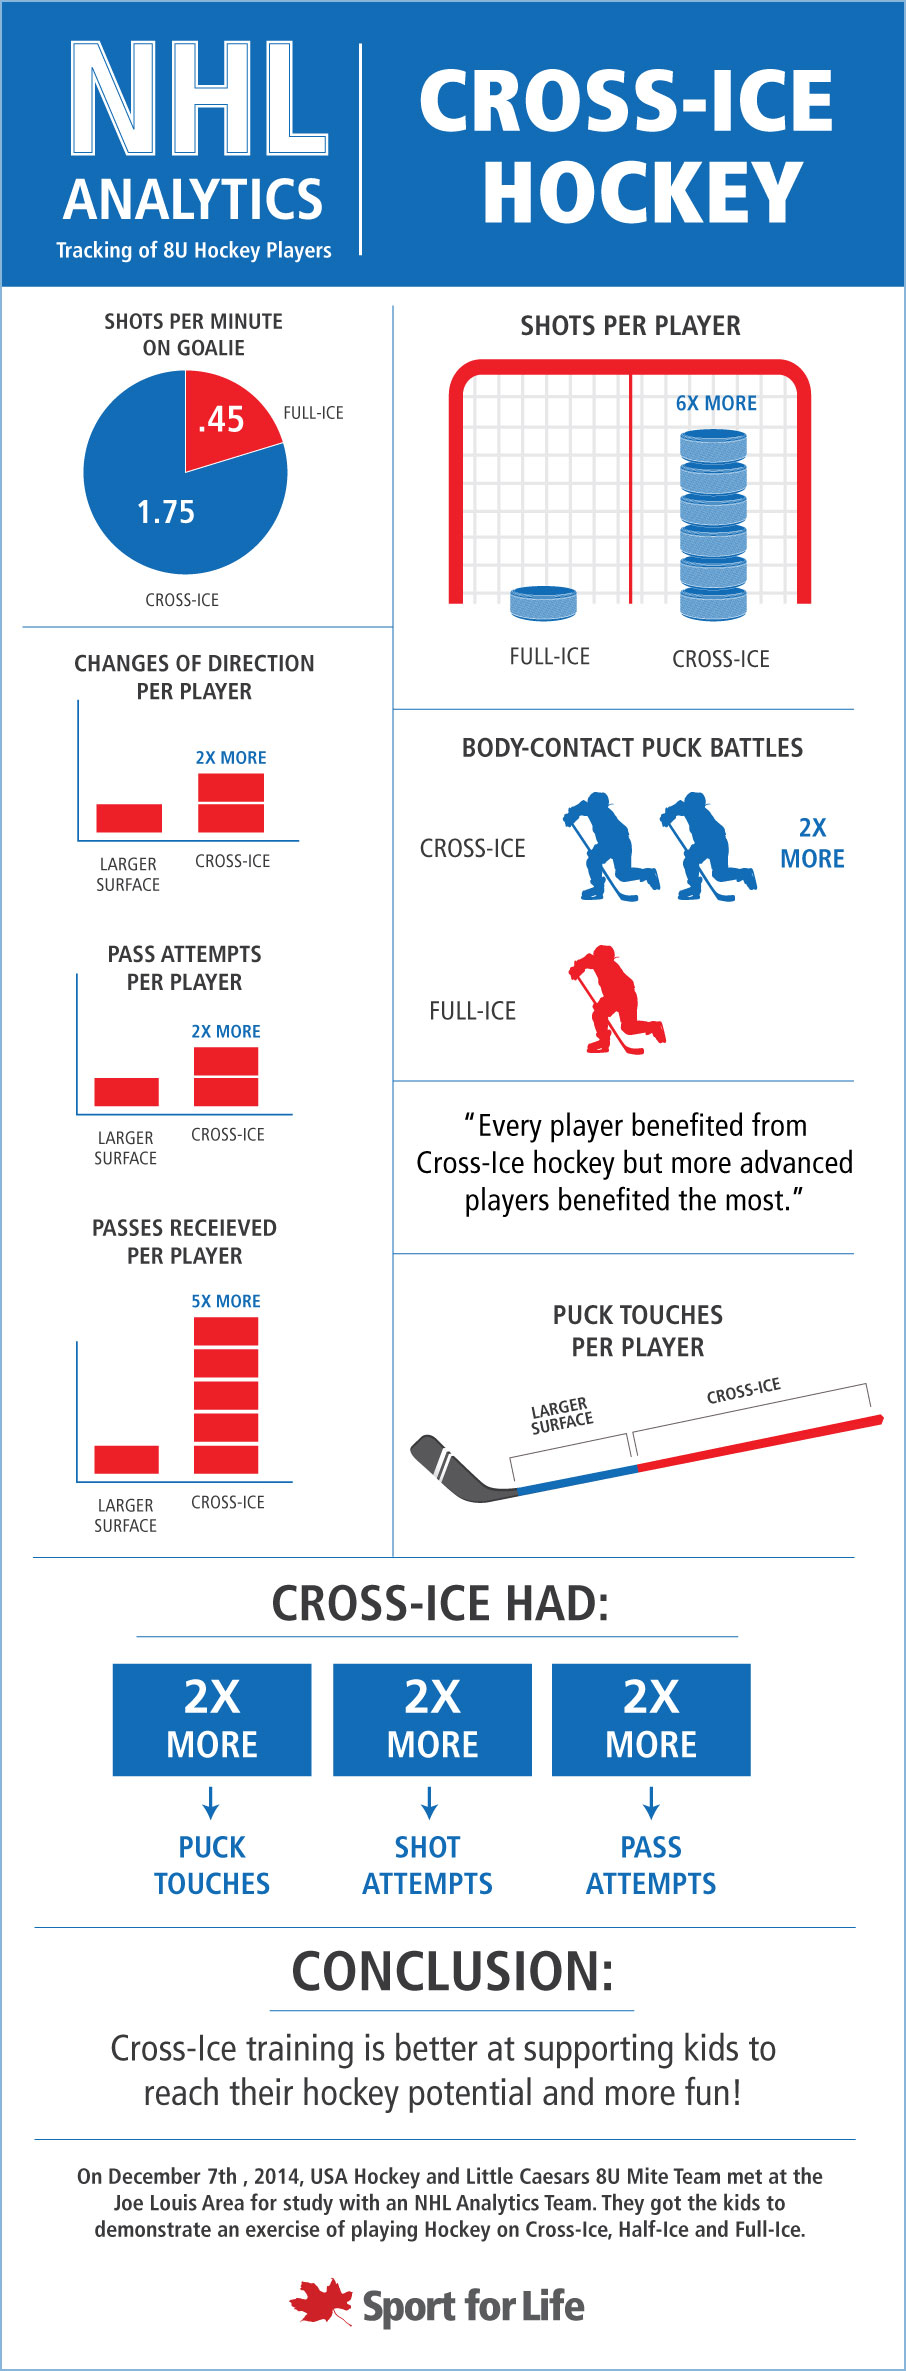 NHL Analytics